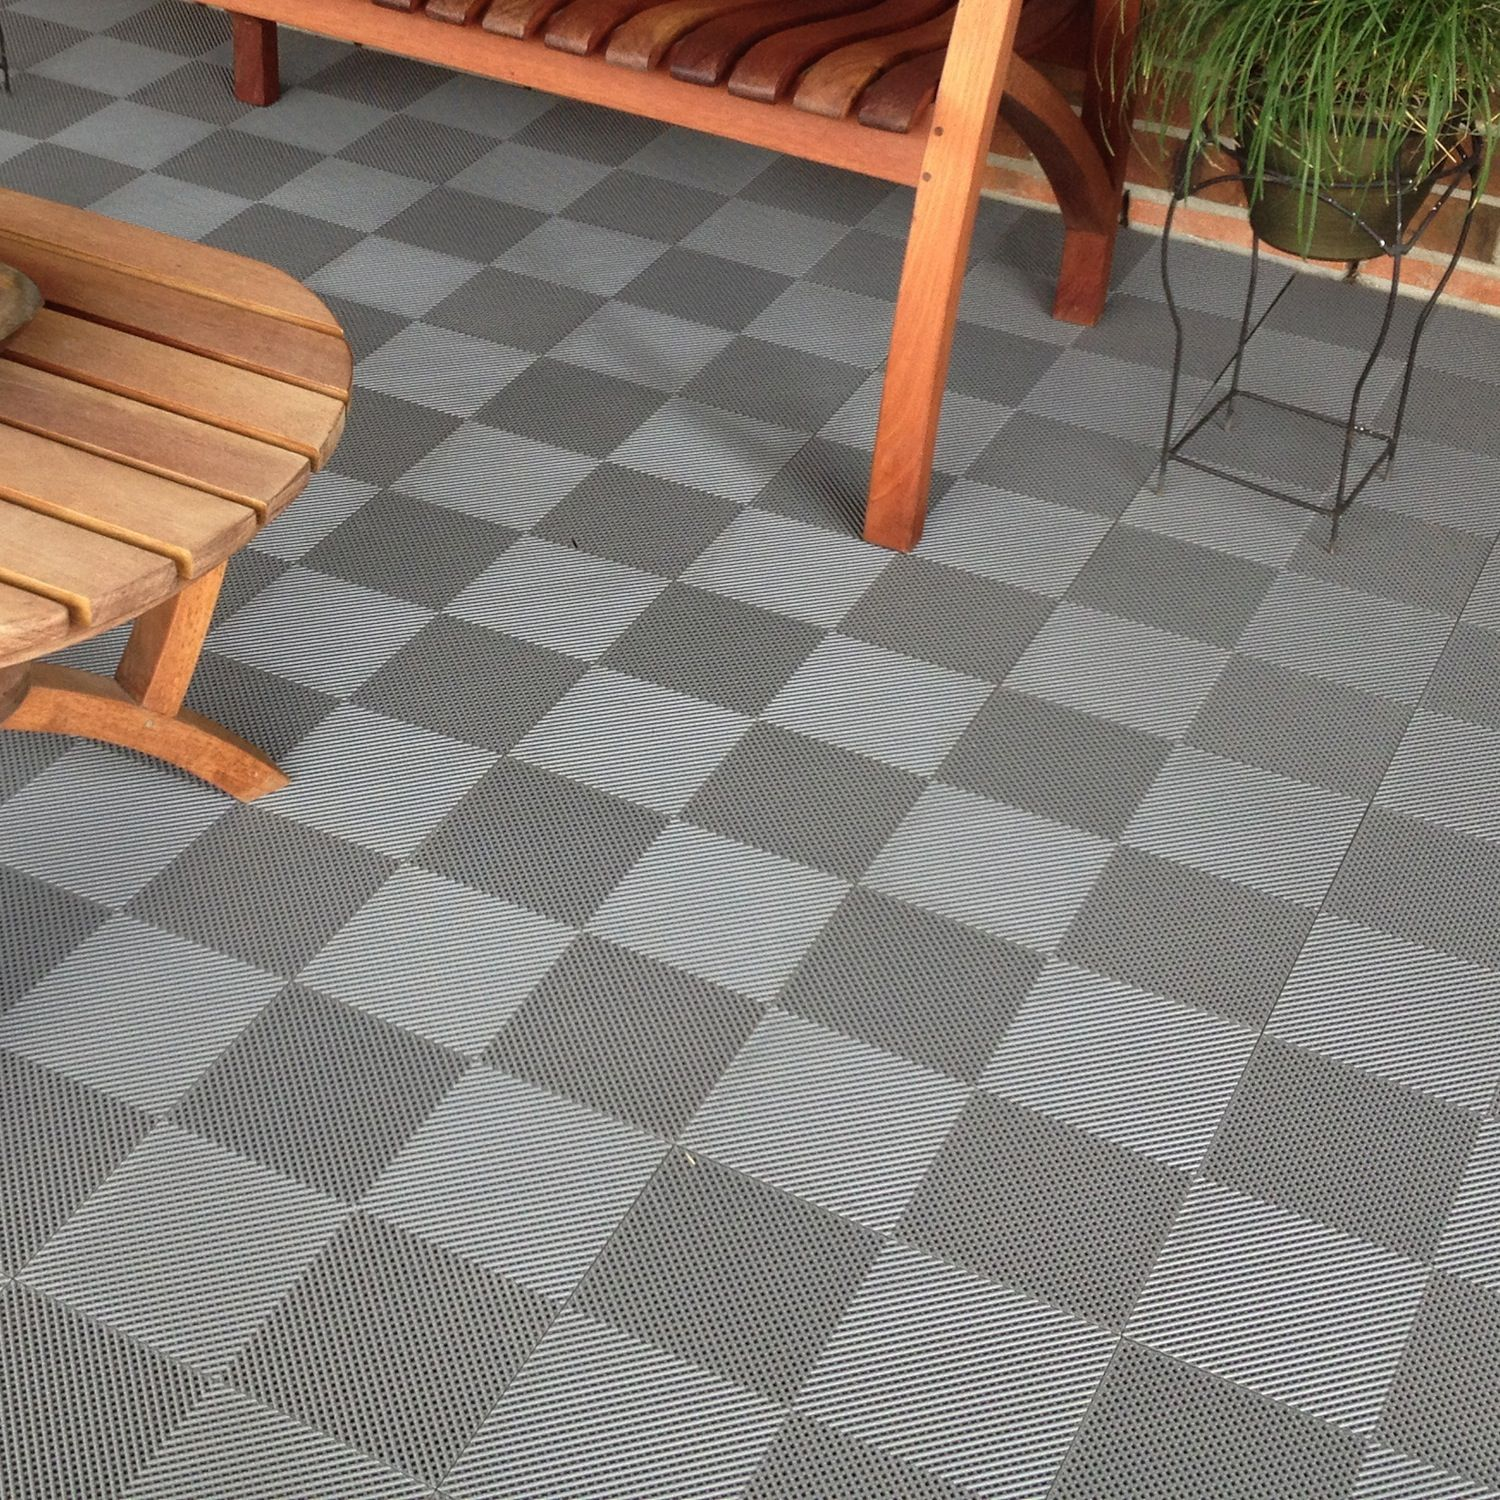 Spruce up your deck or patio flooring using diy interlocking blocktile deck and patio flooring interlocking perforated tiles pack of overstock shopping the best prices on flooring dailygadgetfo Images